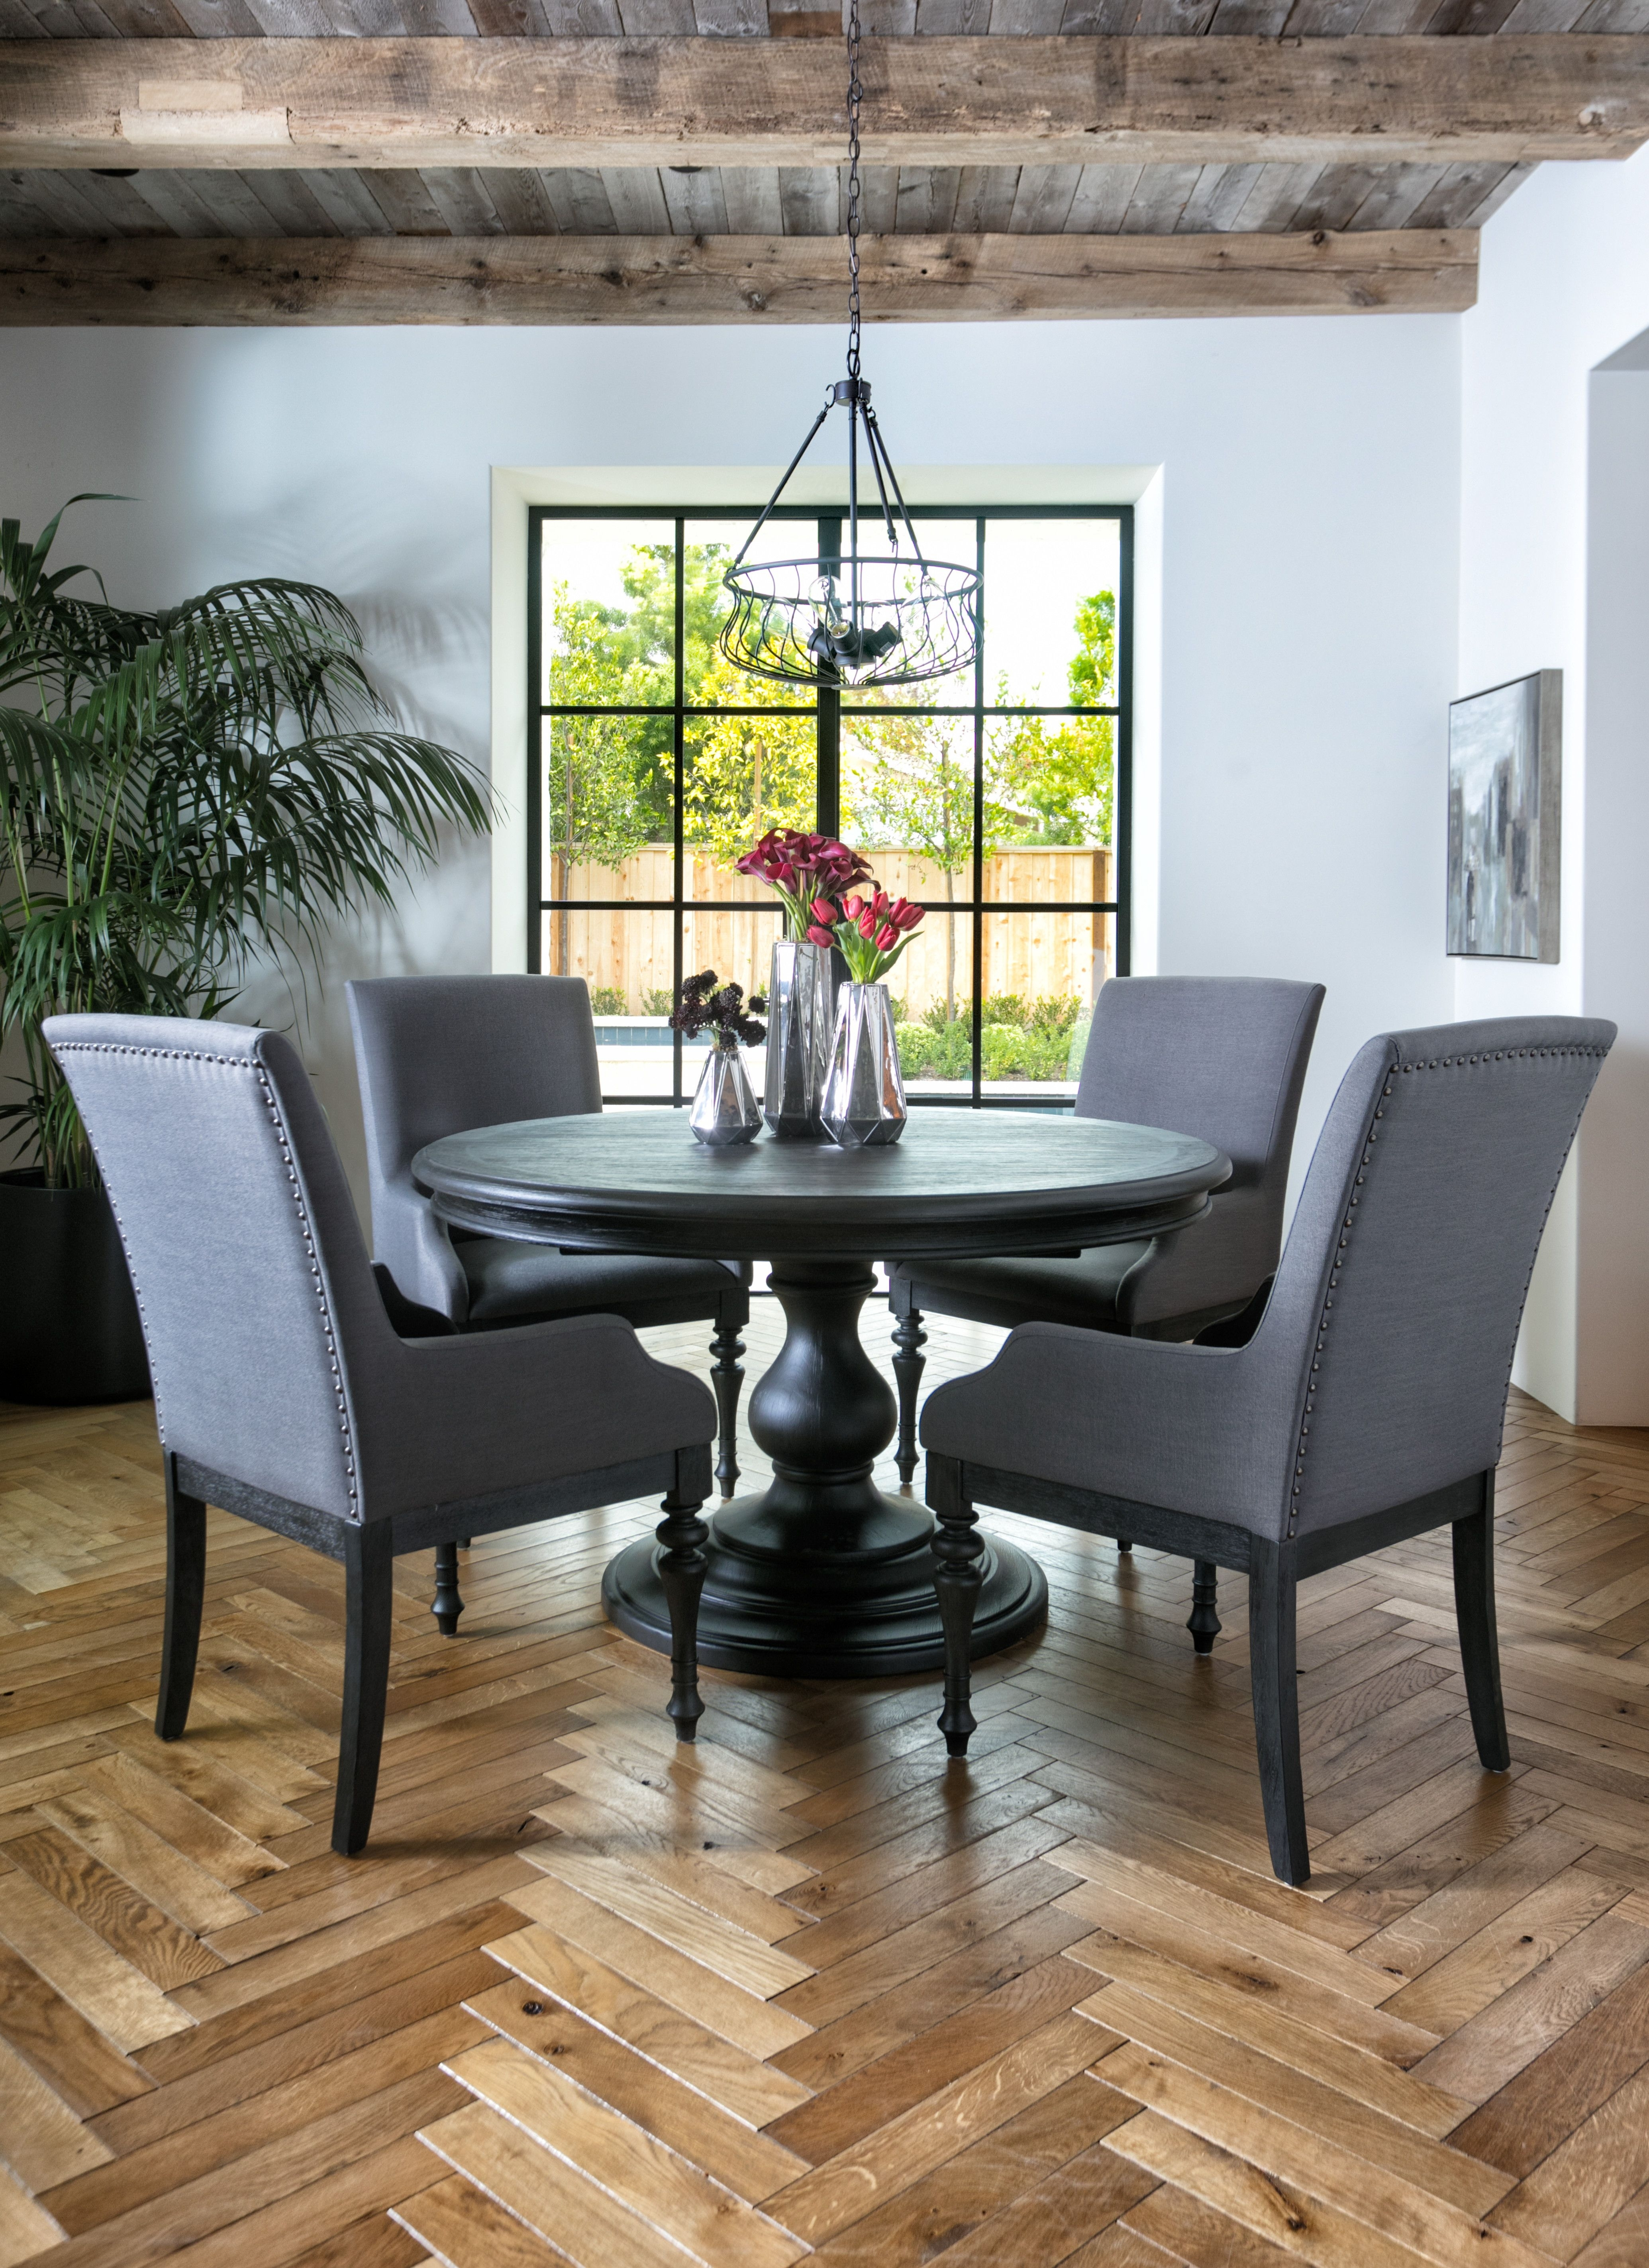 Caira Black 5 Piece Round Dining Set With Diamond Back Side Chairs Regarding Most Popular Caira Black 5 Piece Round Dining Sets With Diamond Back Side Chairs (Photo 1 of 20)